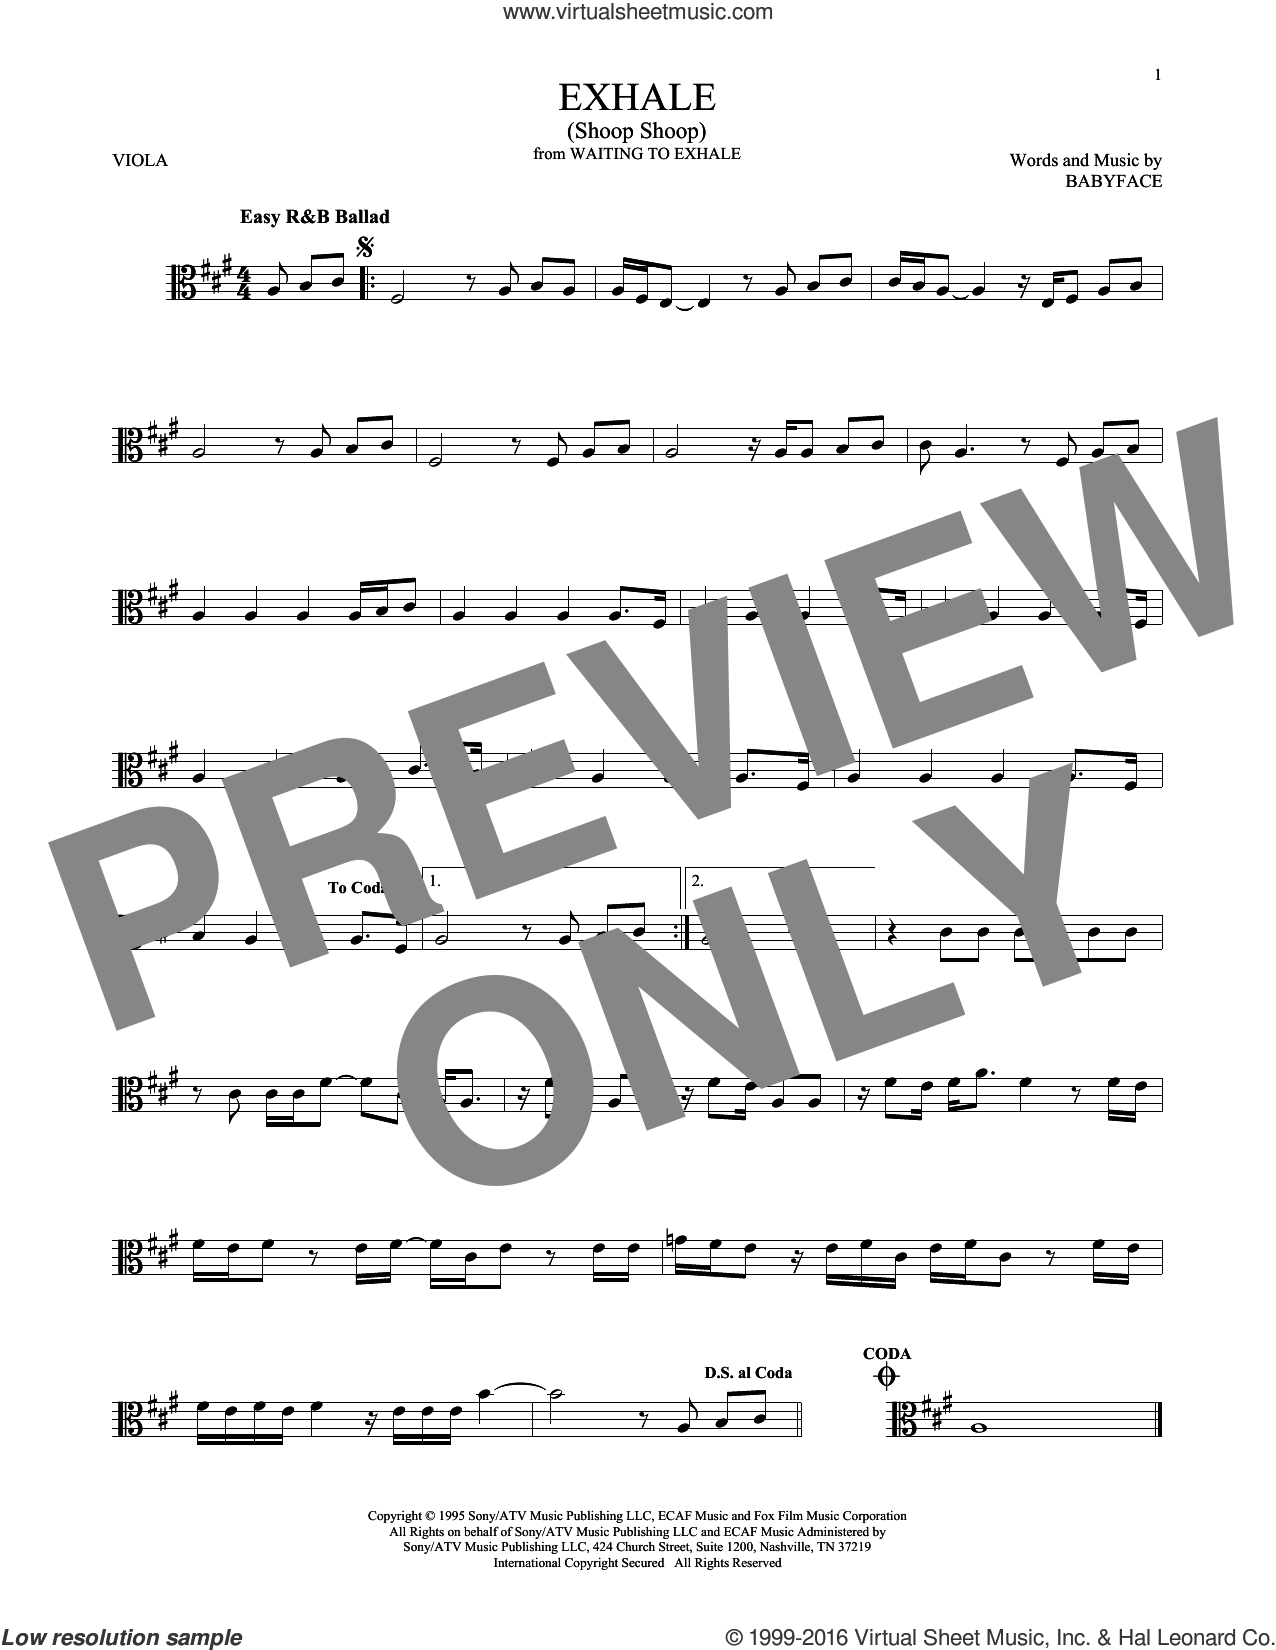 Exhale (Shoop Shoop) sheet music for viola solo by Whitney Houston and Babyface, intermediate skill level